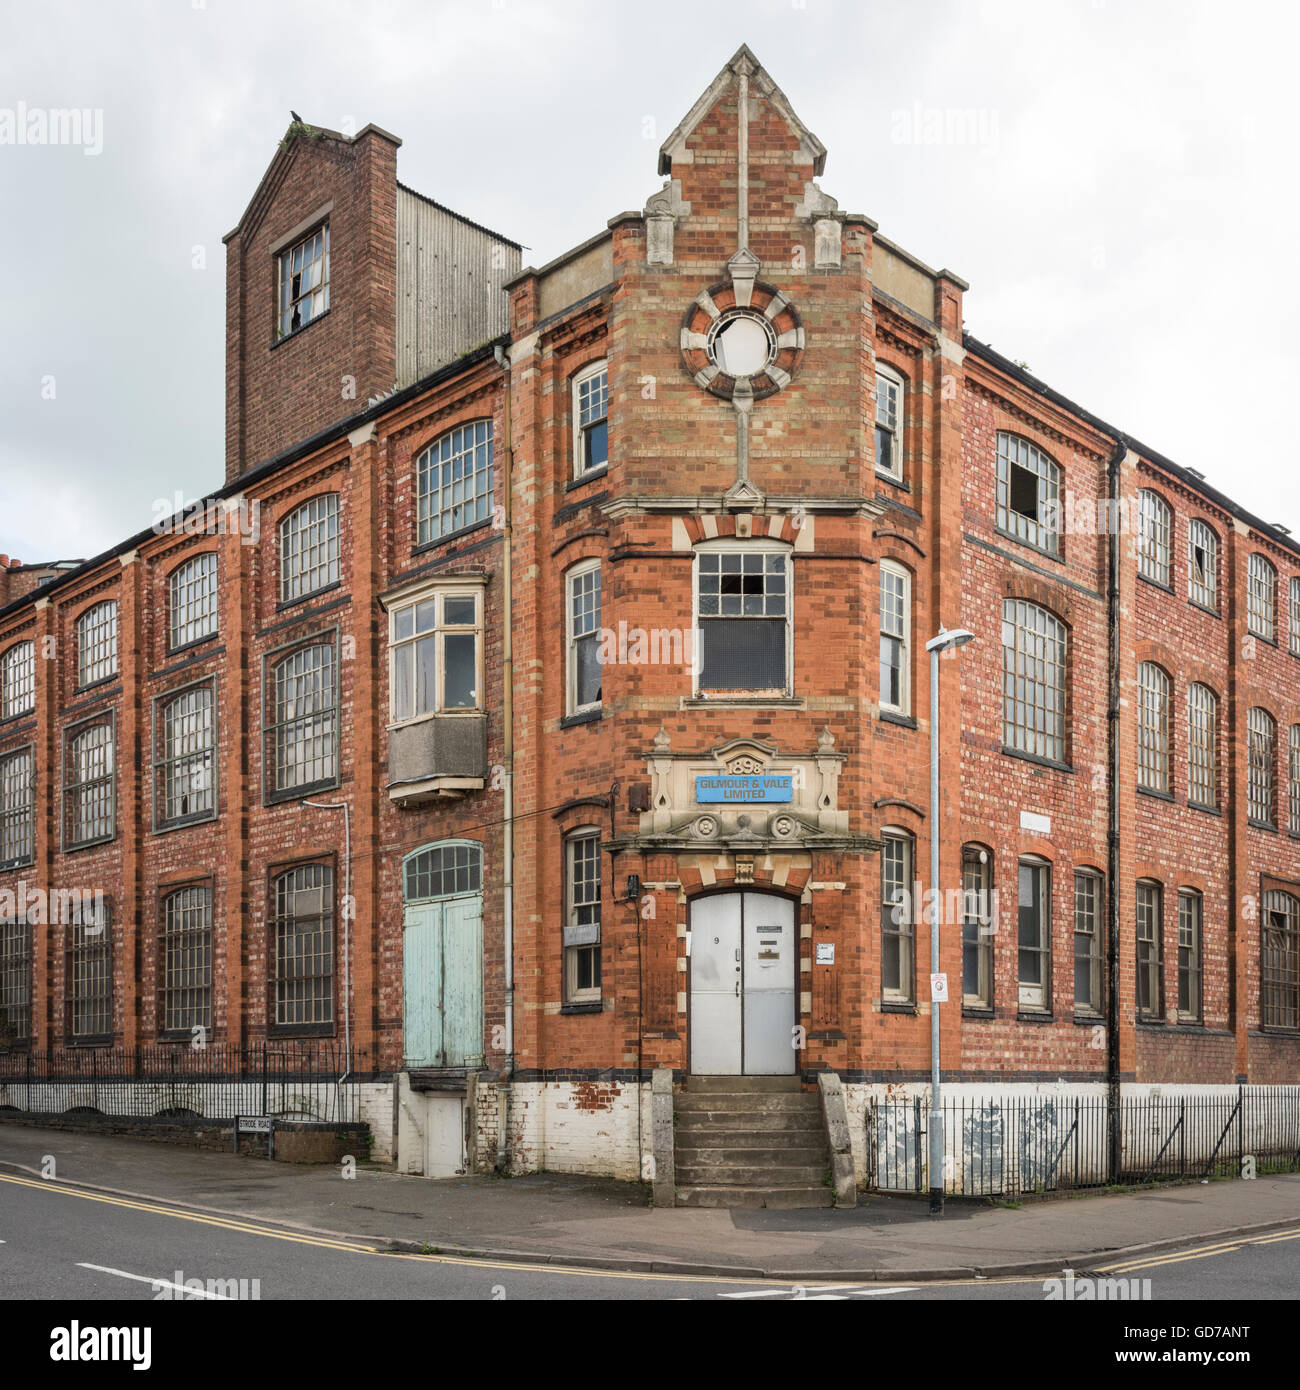 An old, disused factory building in Wellingborough Northamptonshire UK - Stock Image